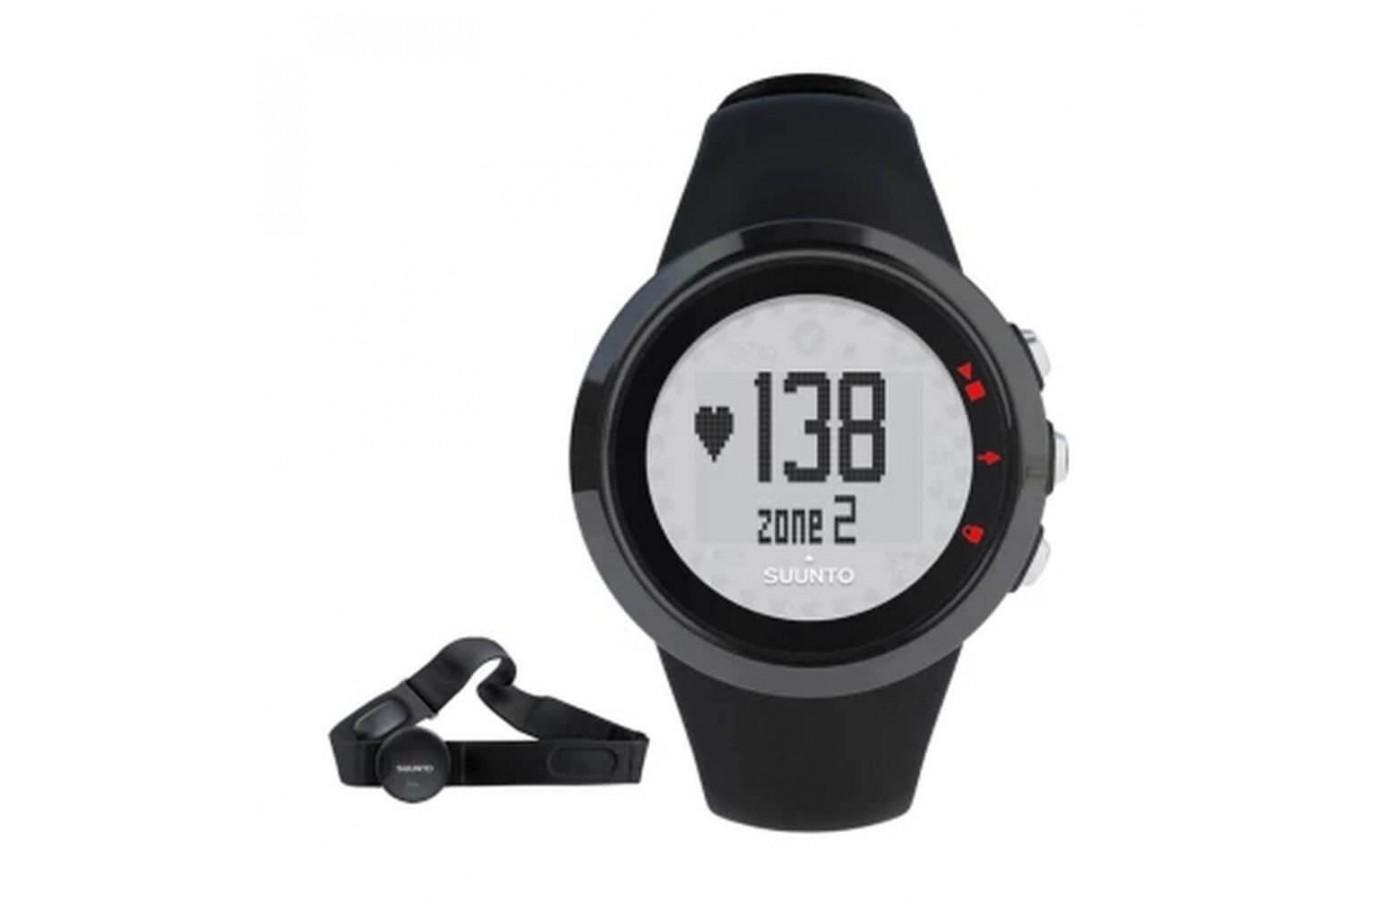 Runners looking for a basic watch will be happy with the suunto m2